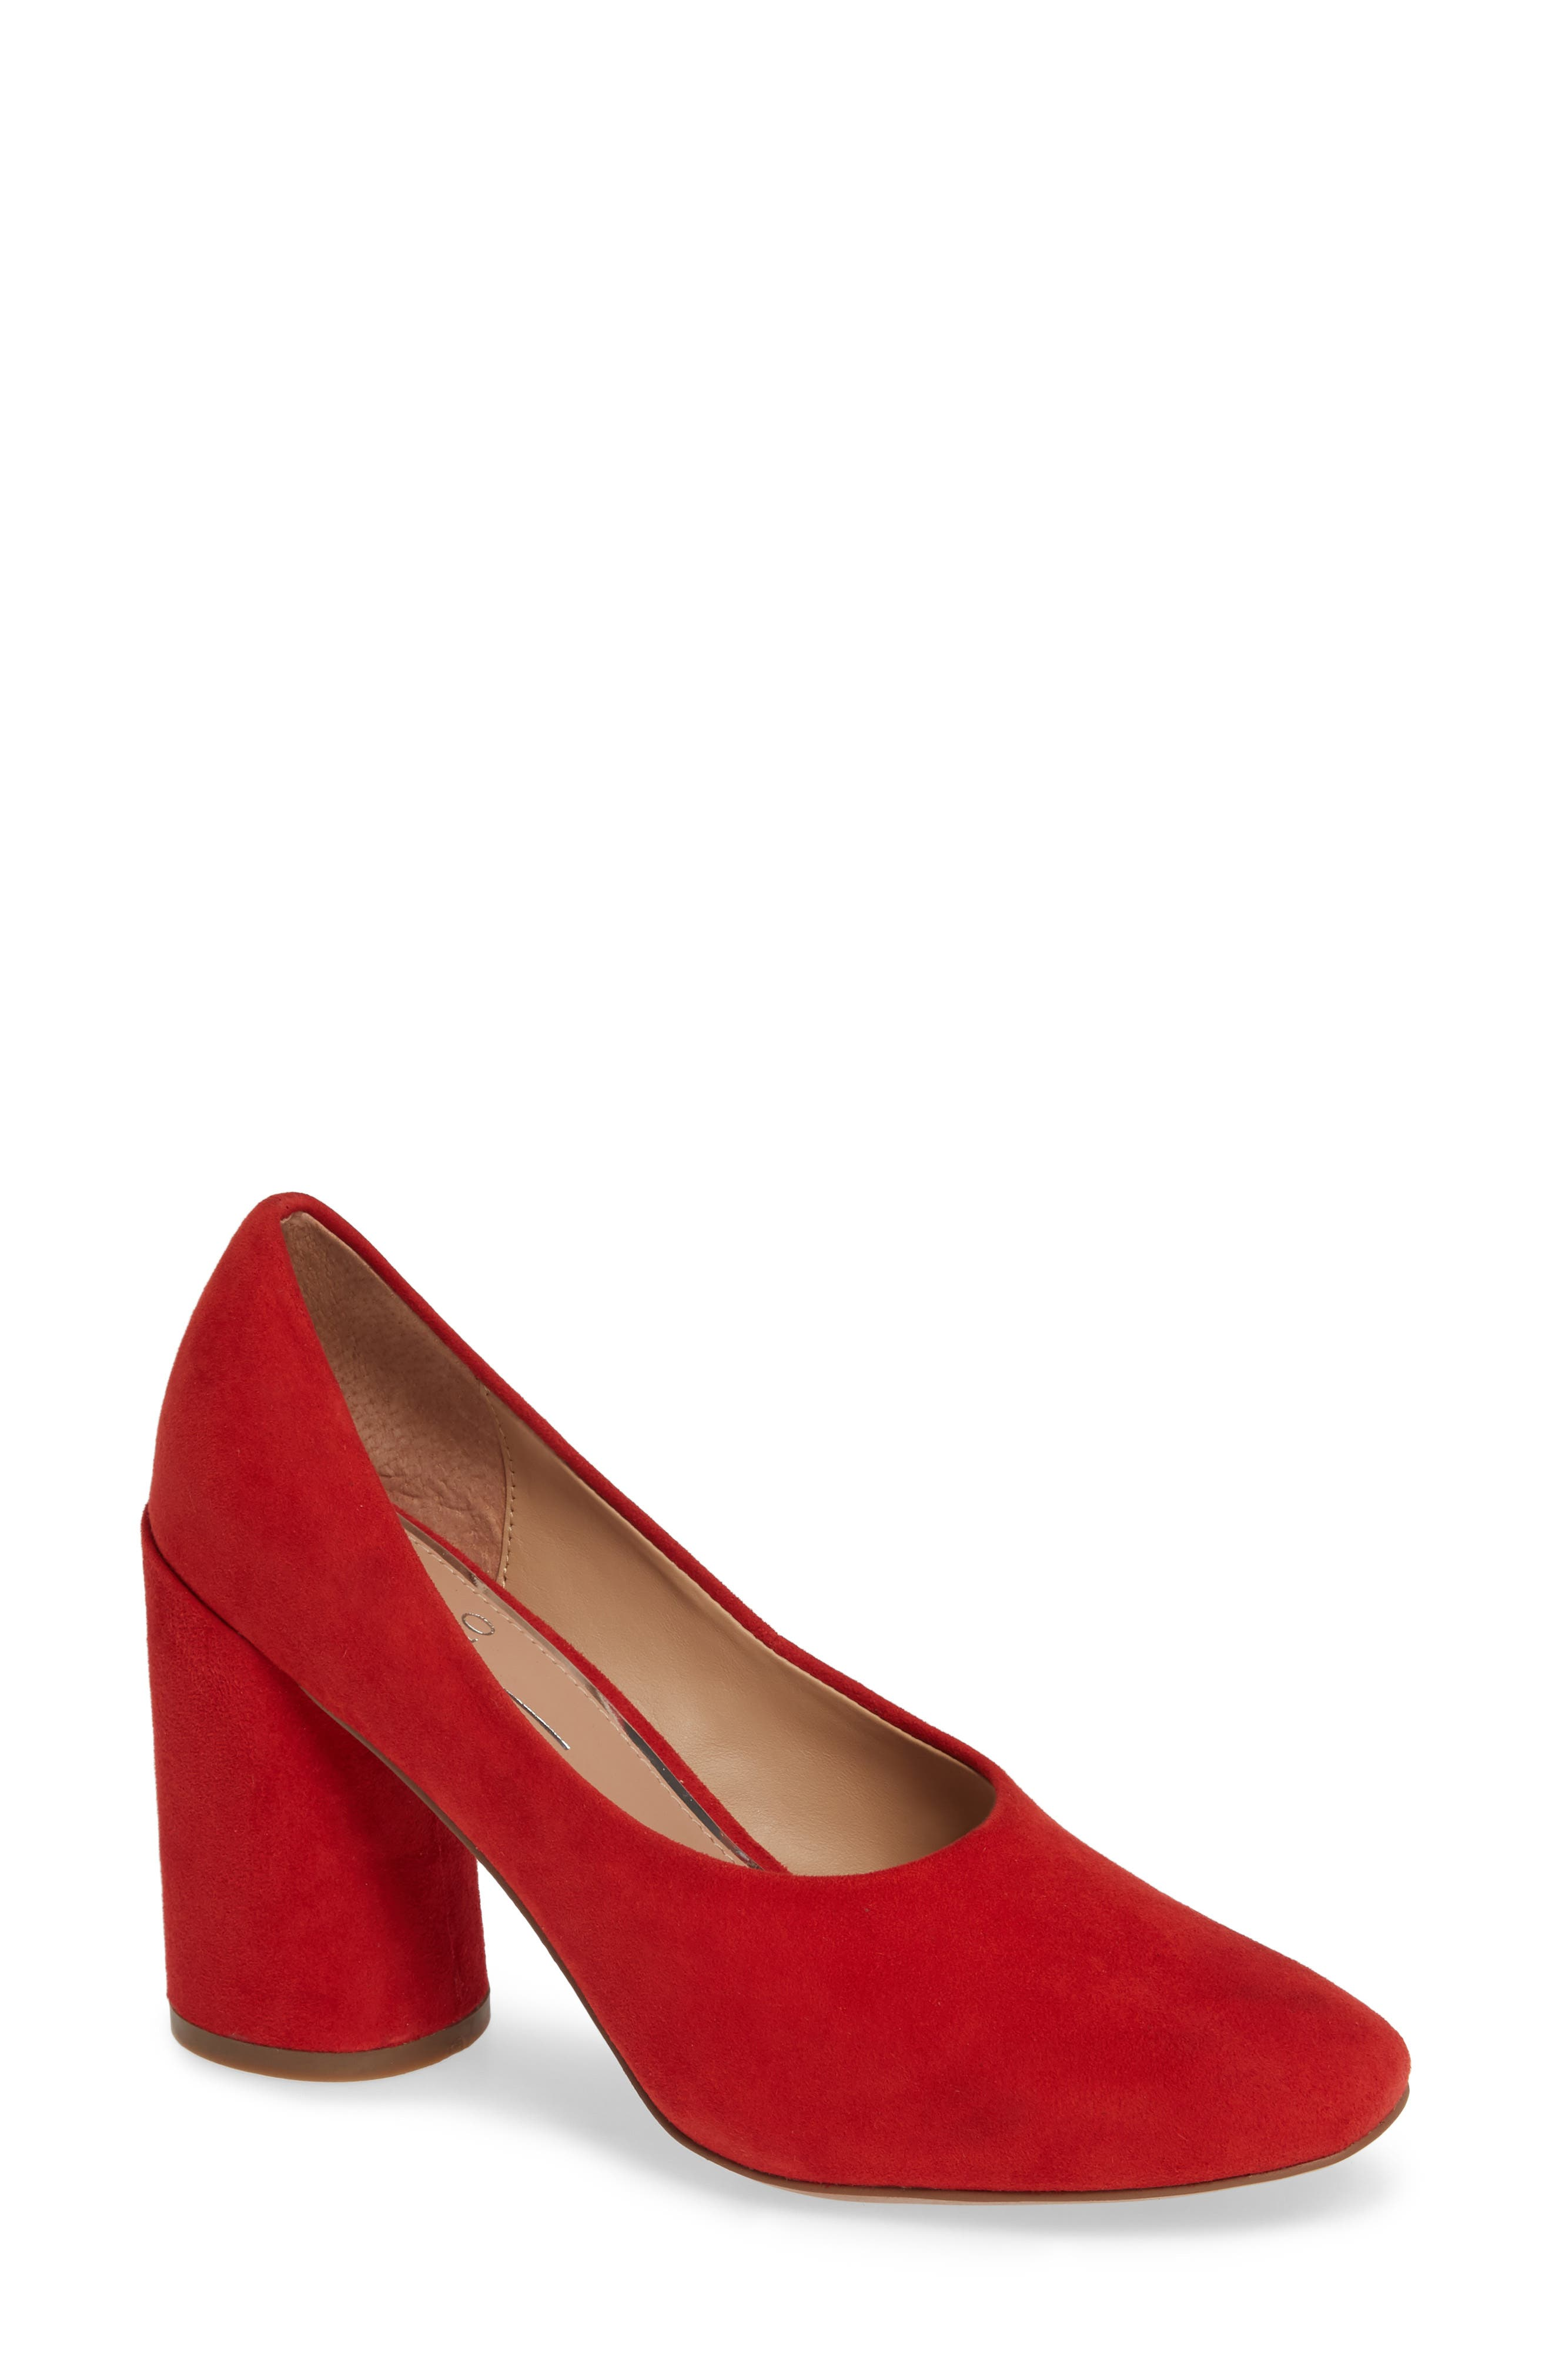 Linea Paolo Cherie Round Toe Pump, Red